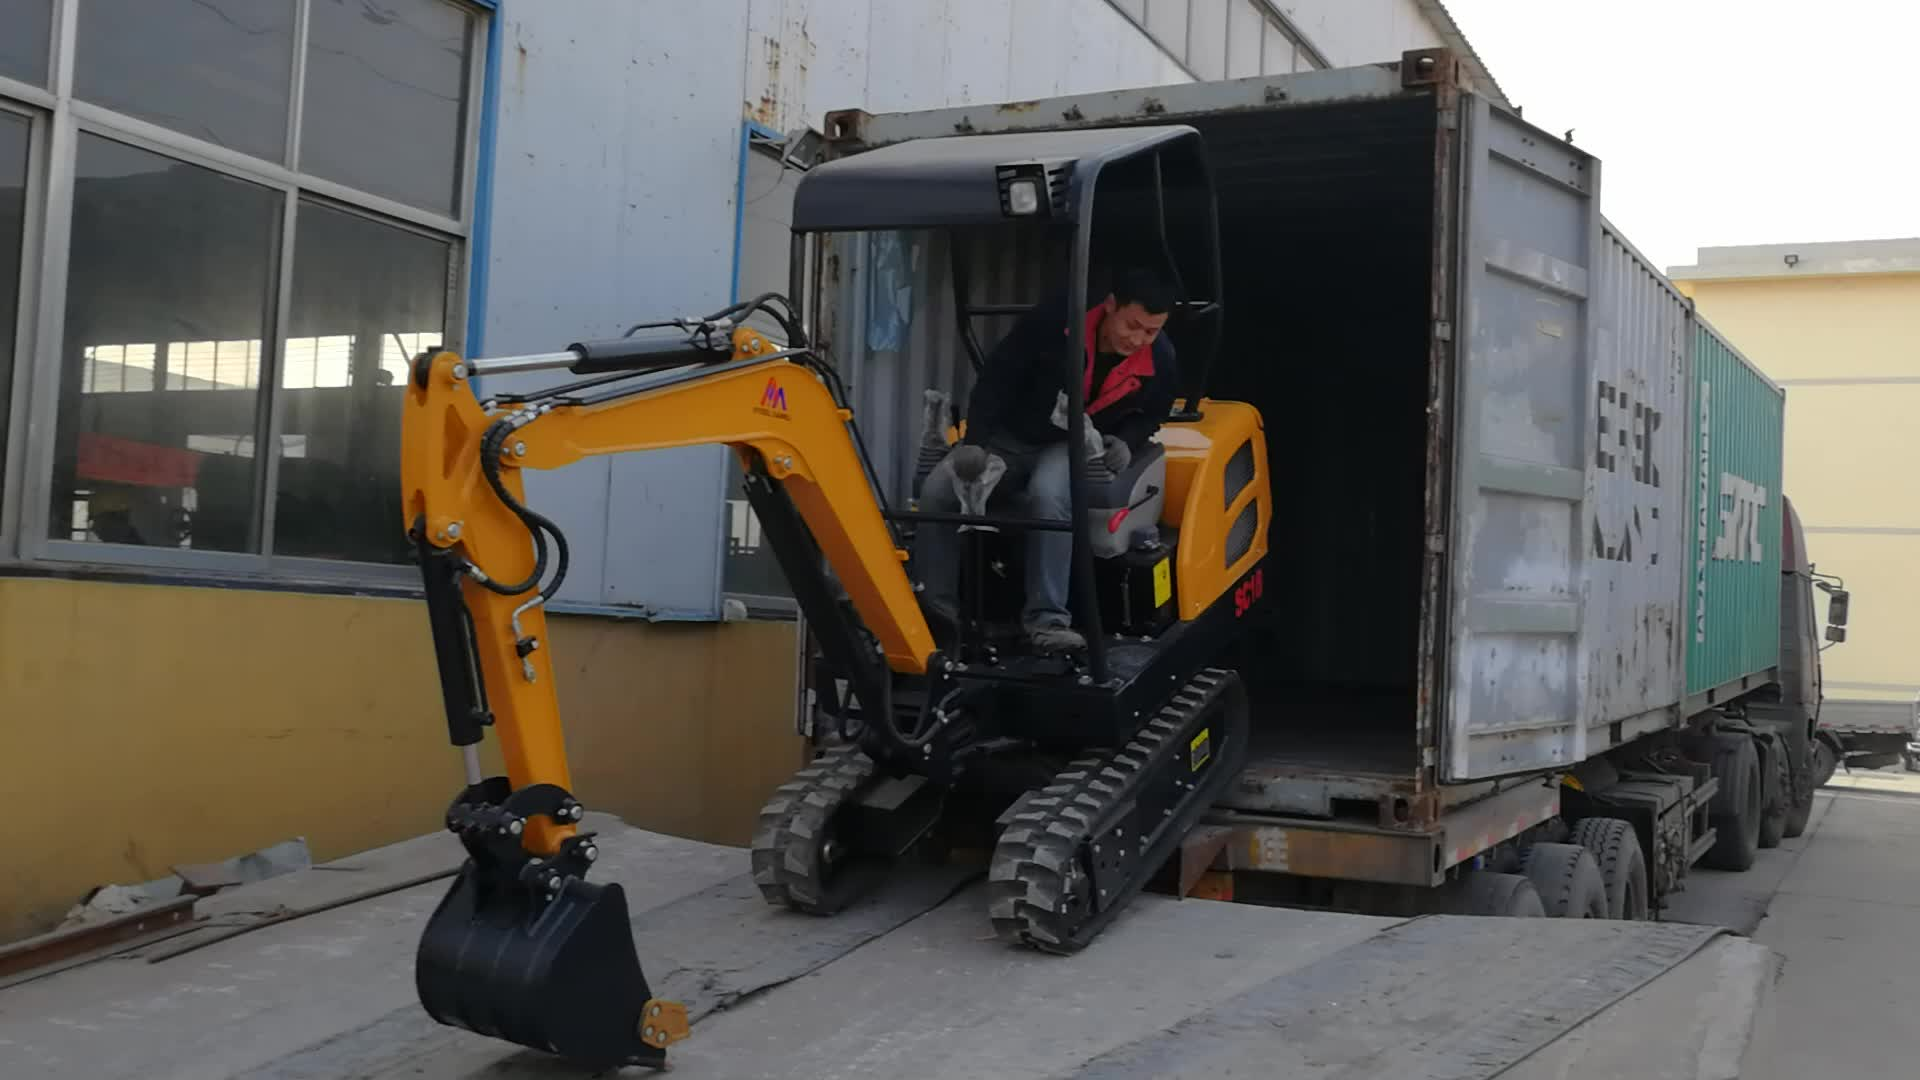 Small towable backhoe excavator 2 ton rubber track excavator for sale